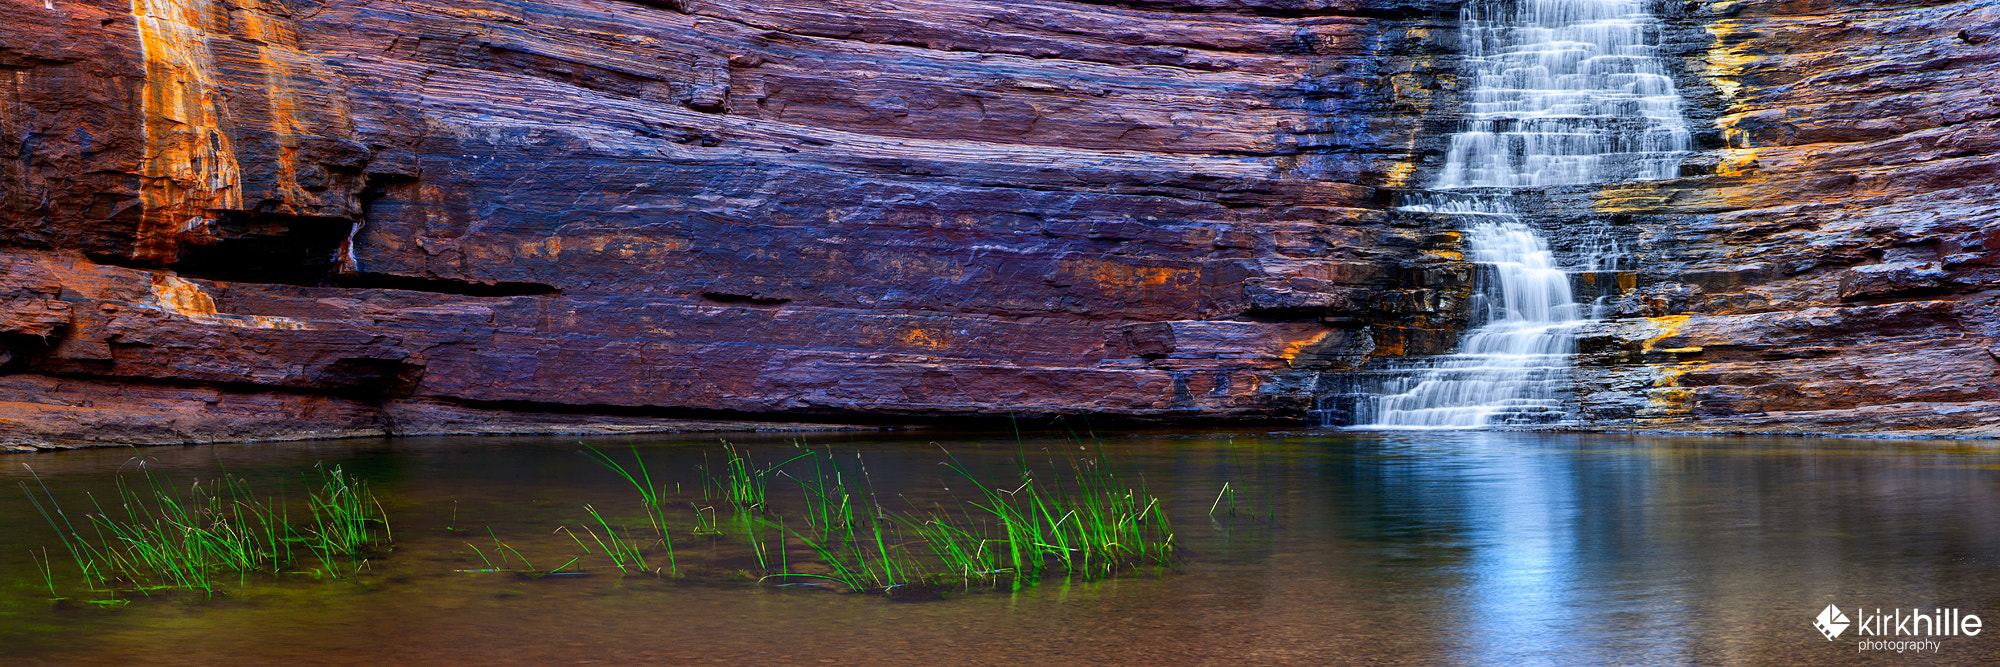 Photograph Karijini Water Falls by Kirk Hille on 500px